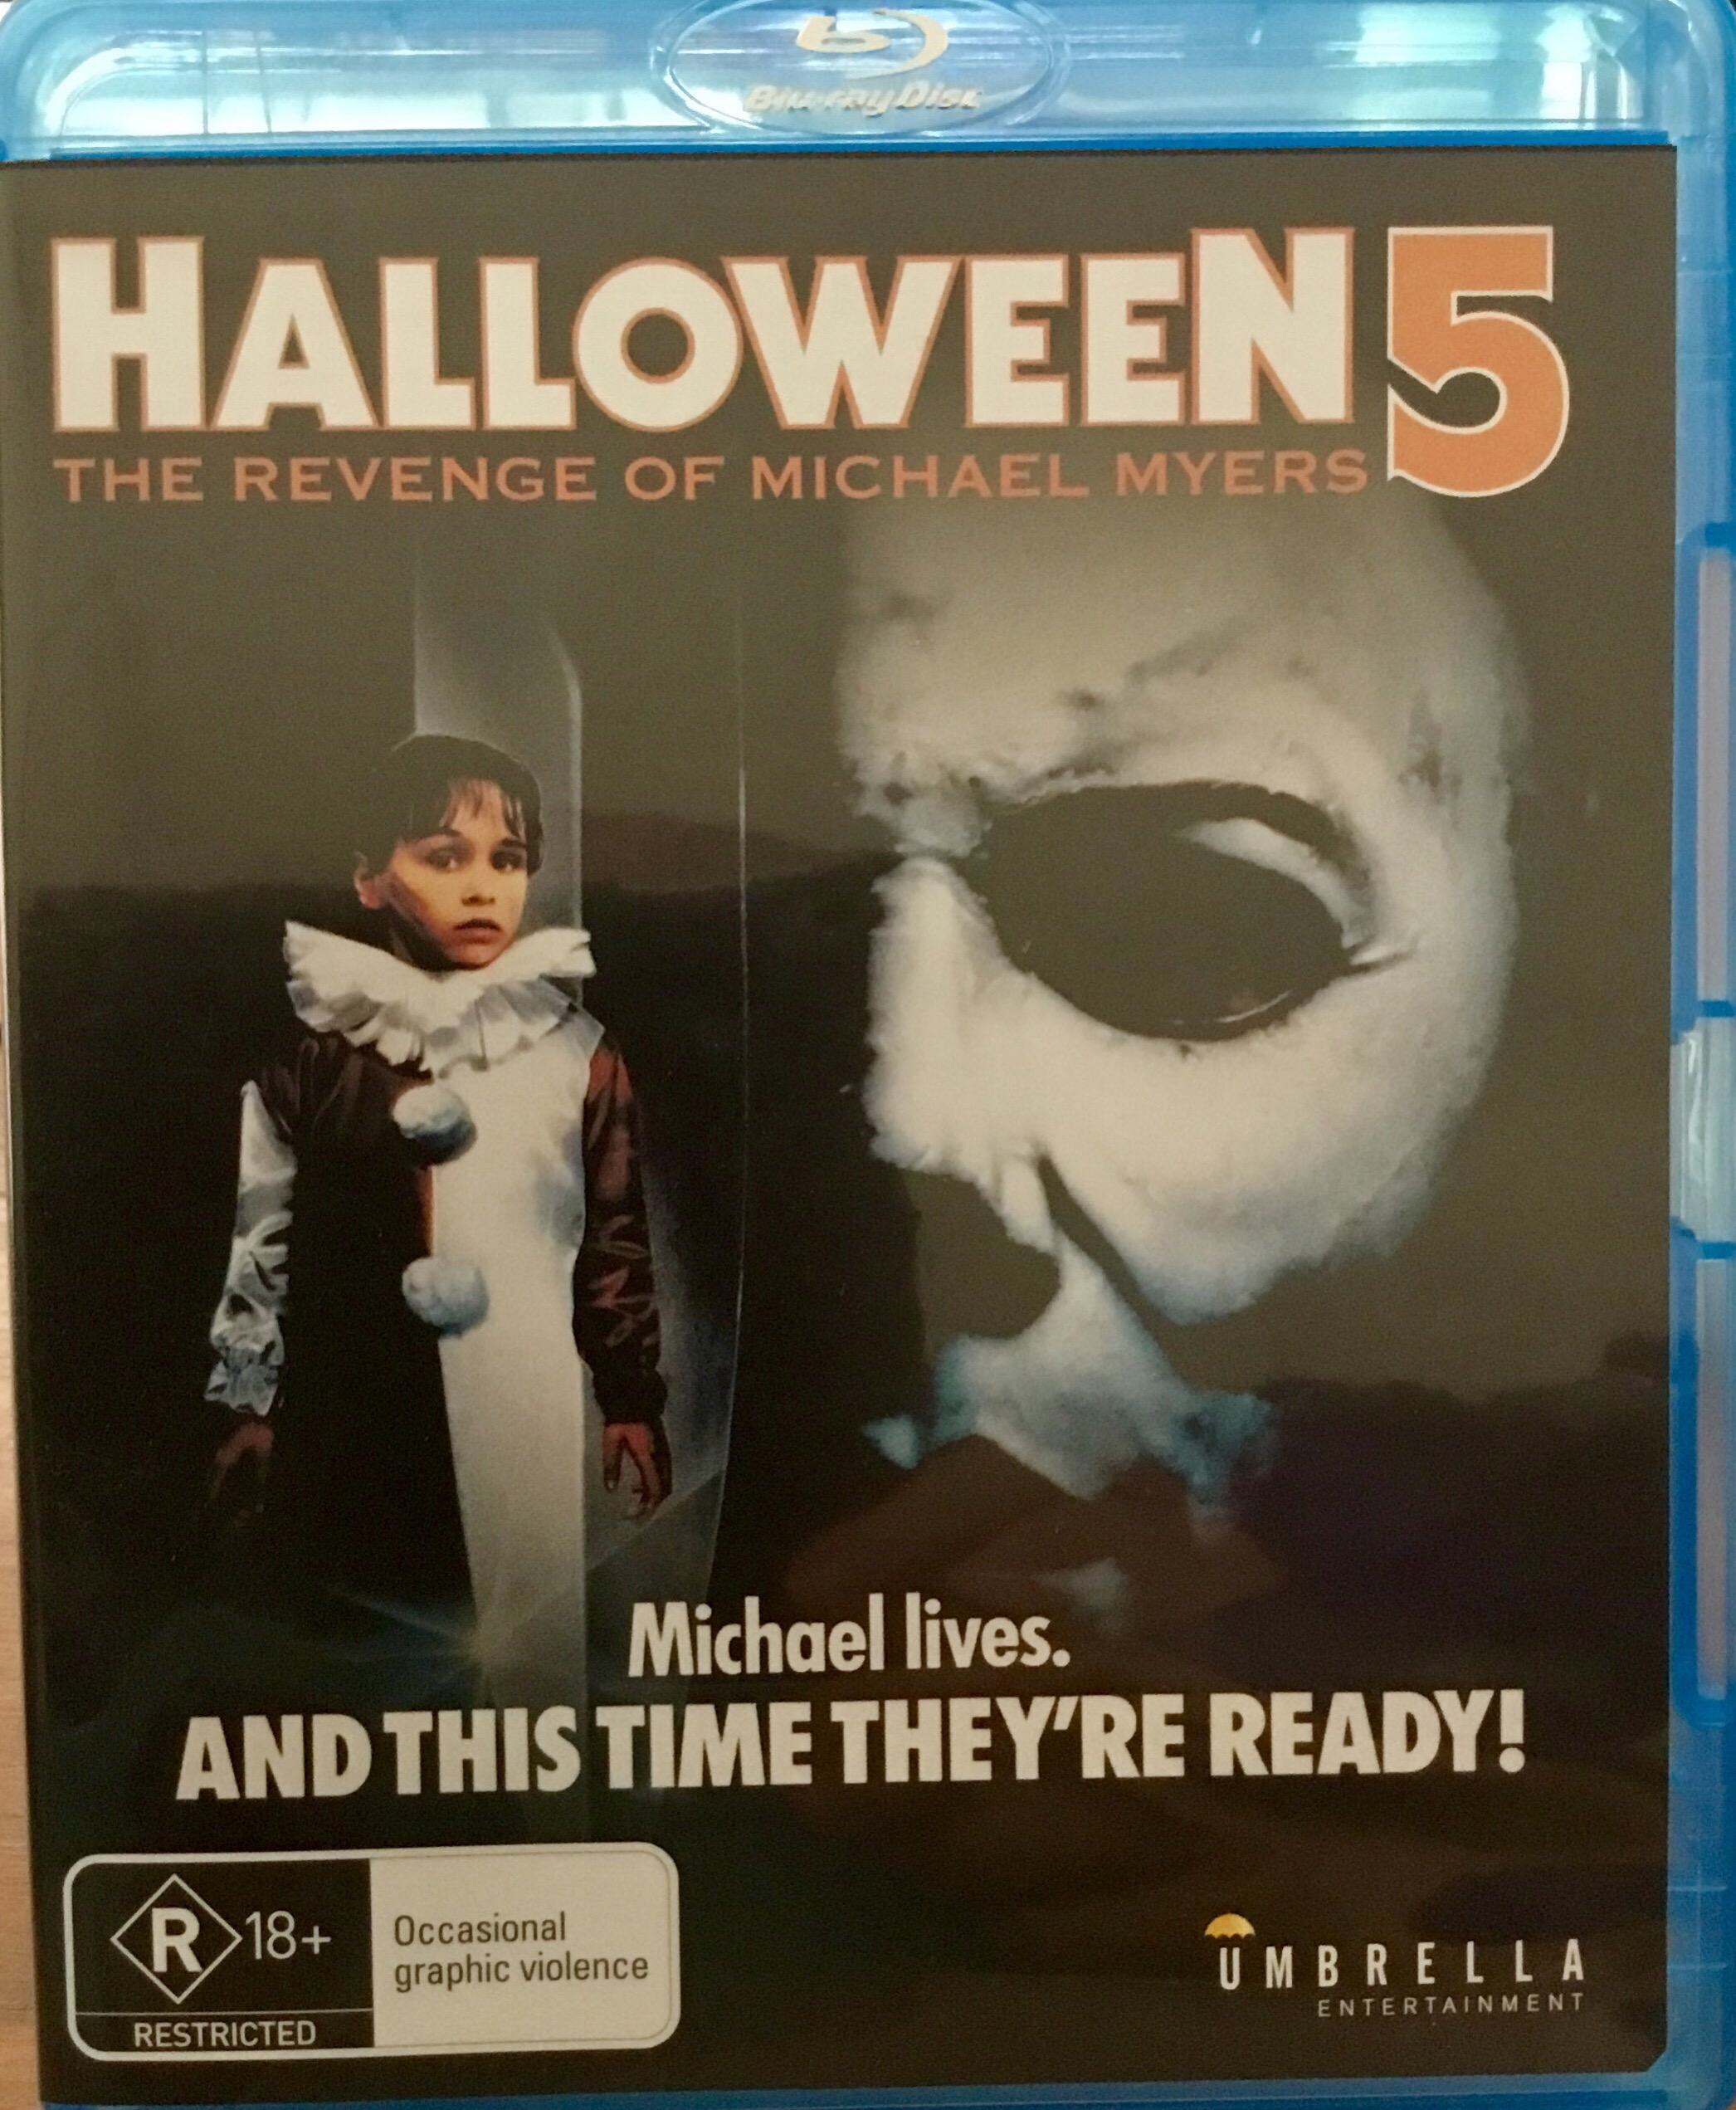 Halloween 5: The Revenge of Michael Myers (1989) | The To Watch Pile